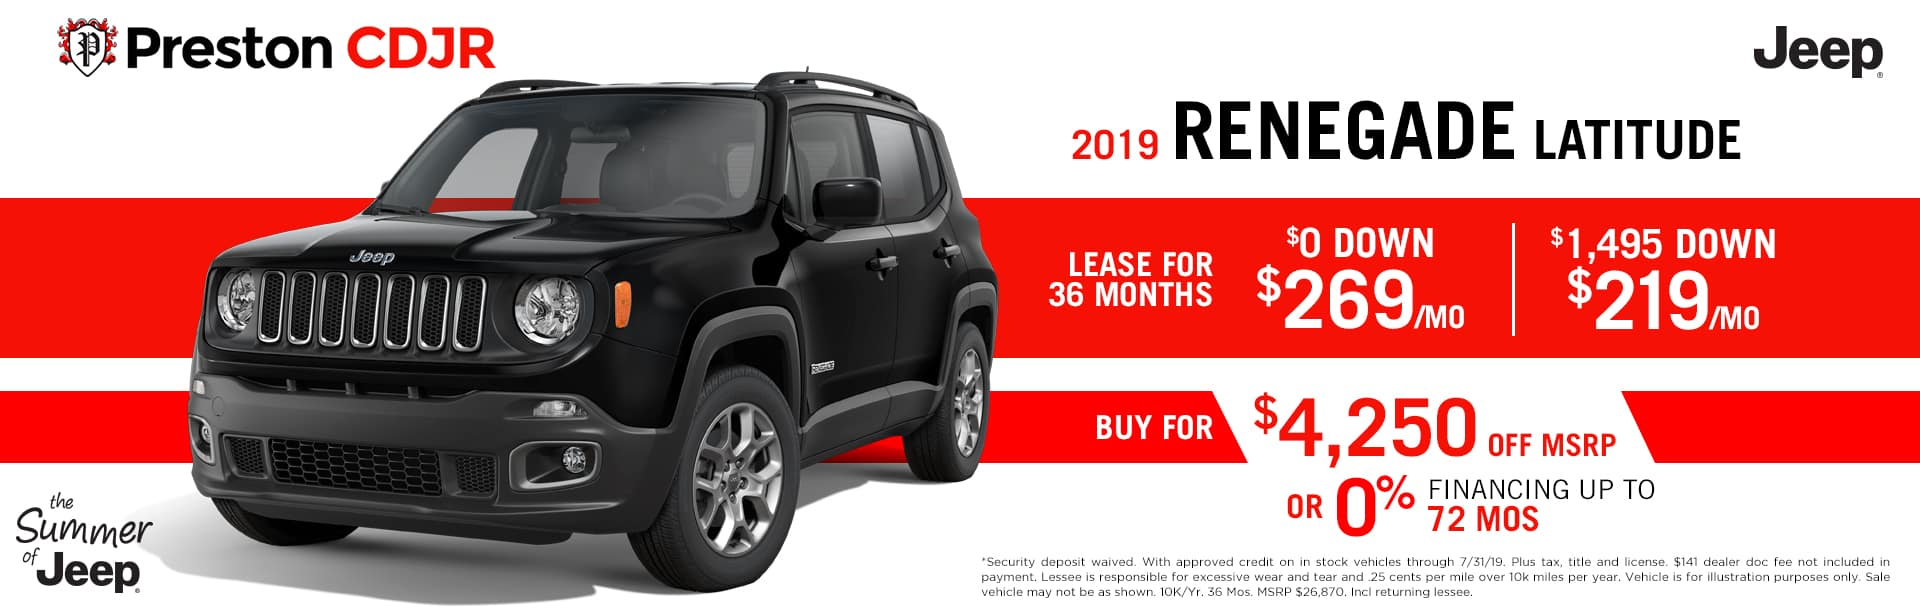 July special on the 2019 Jeep Renegade